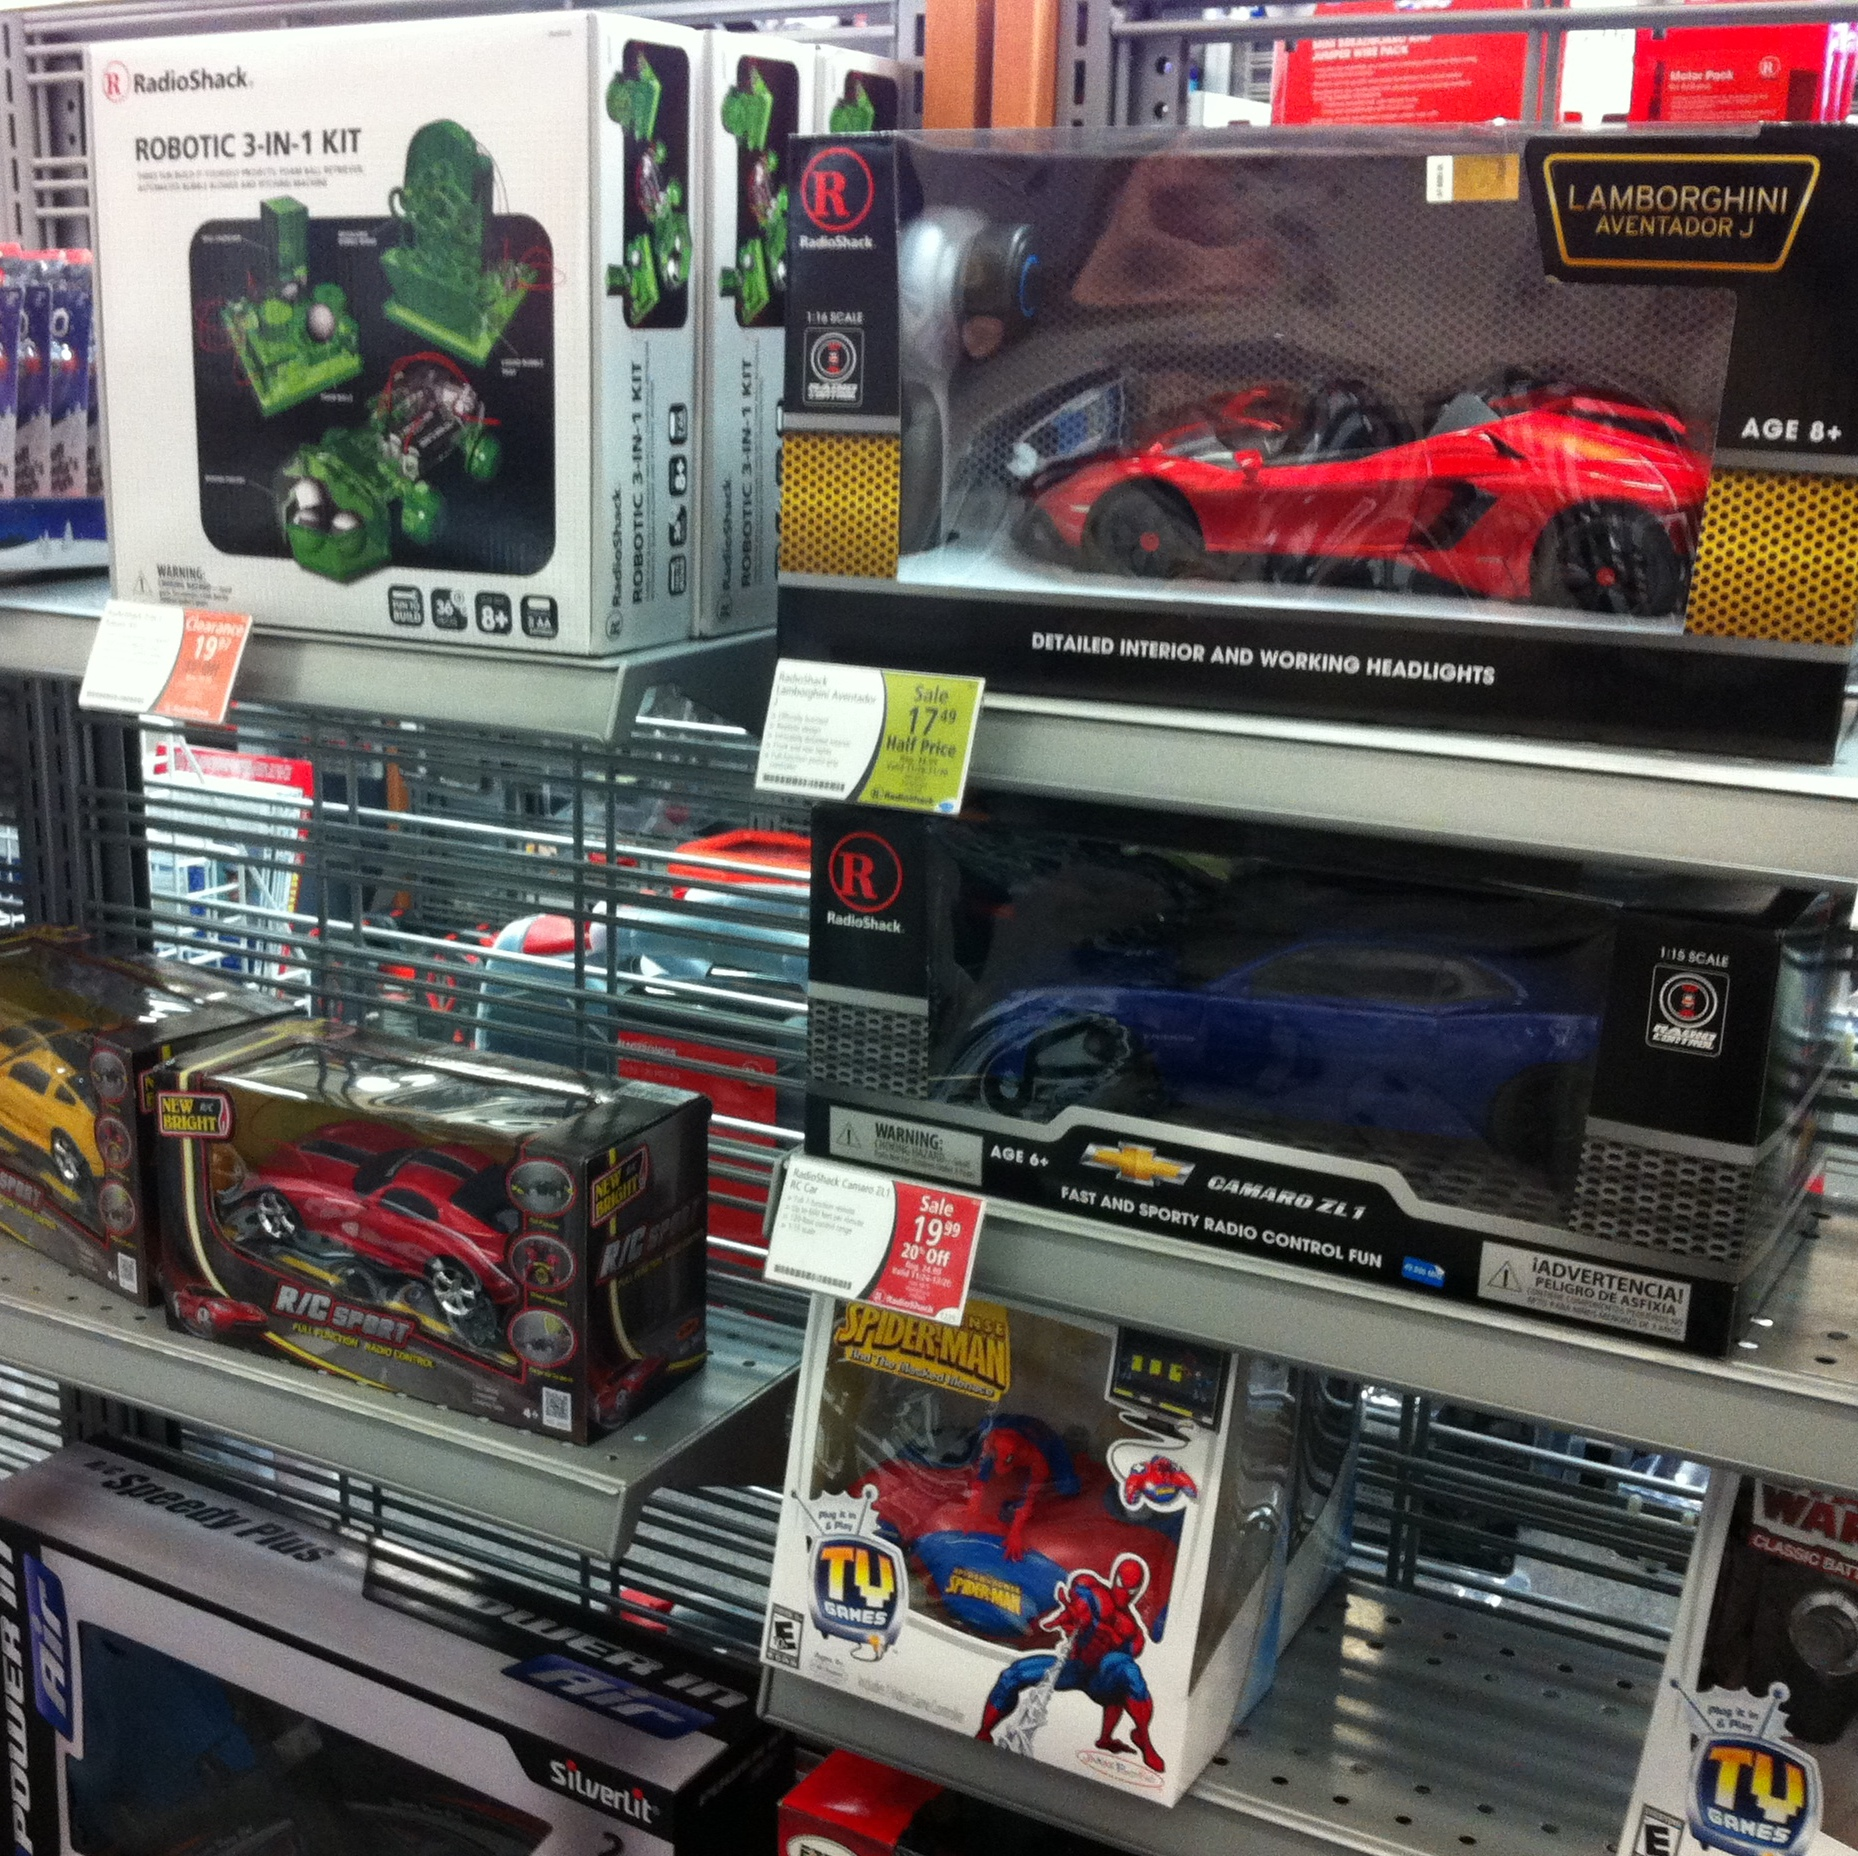 Radio Shack Toys For Boys : Shopping for the whole family at radioshack this holiday